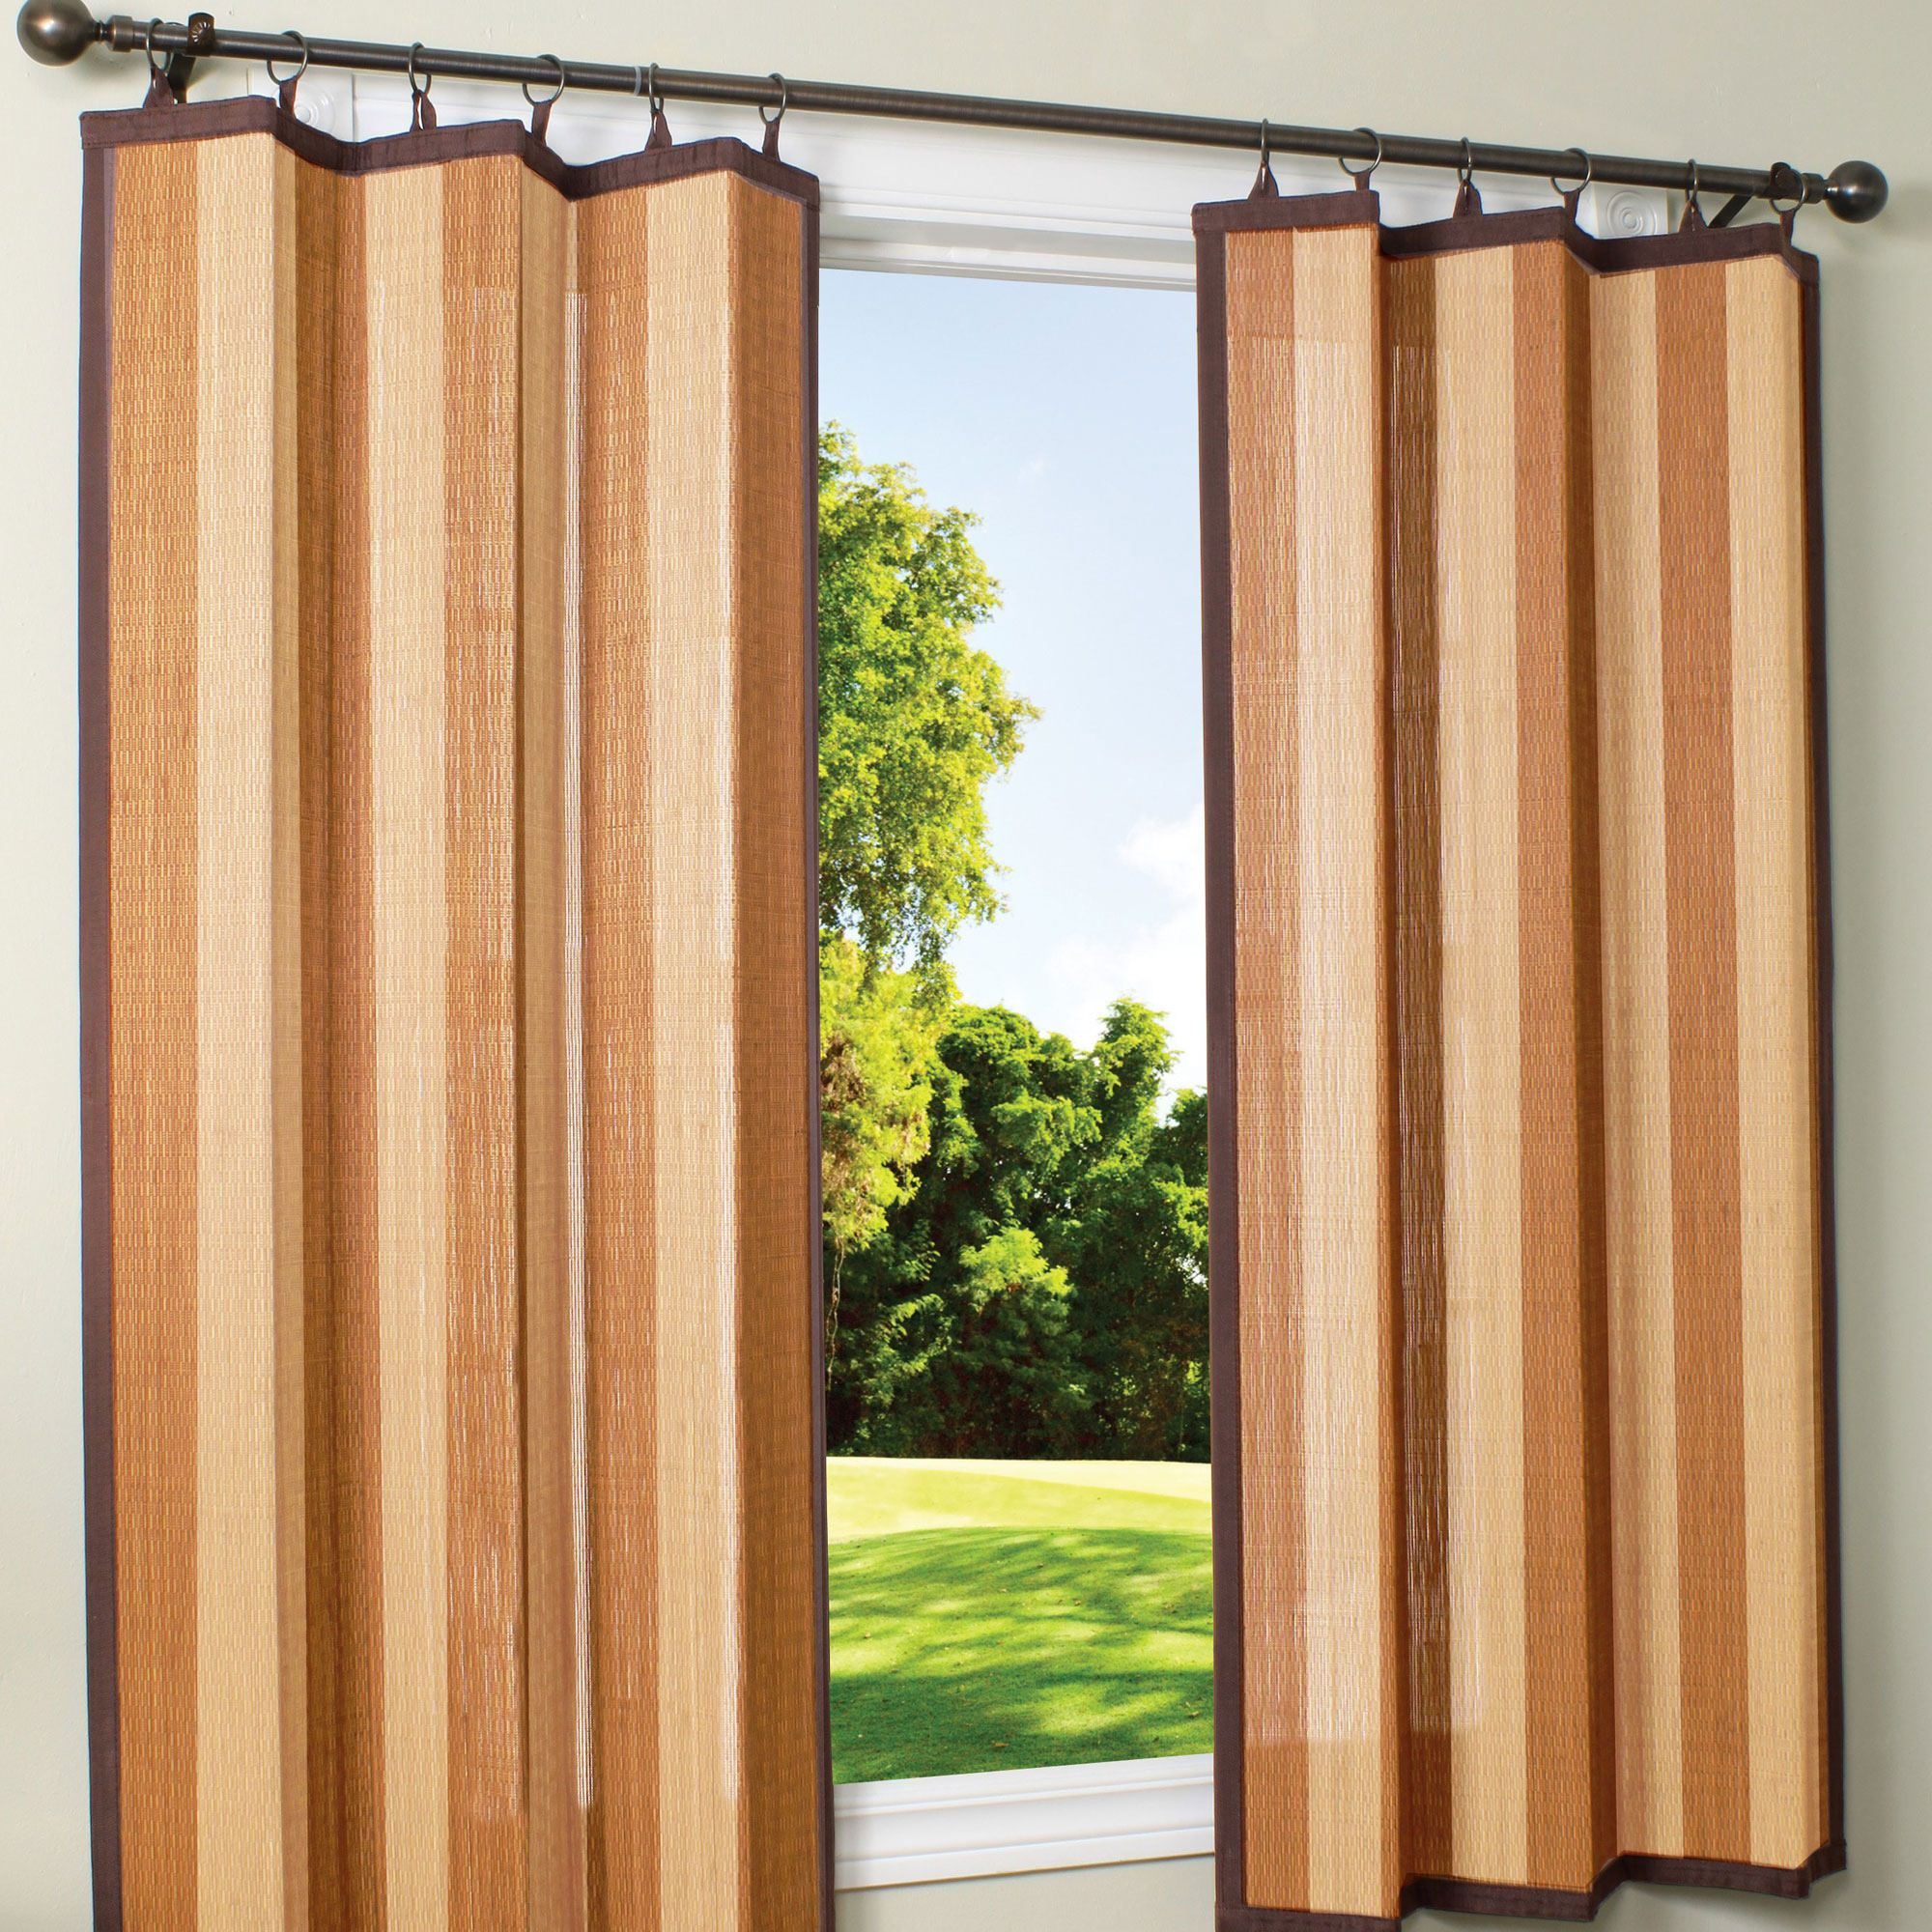 Outdoor bamboo curtains - Outdoor Curtains Bamboo Photo 5